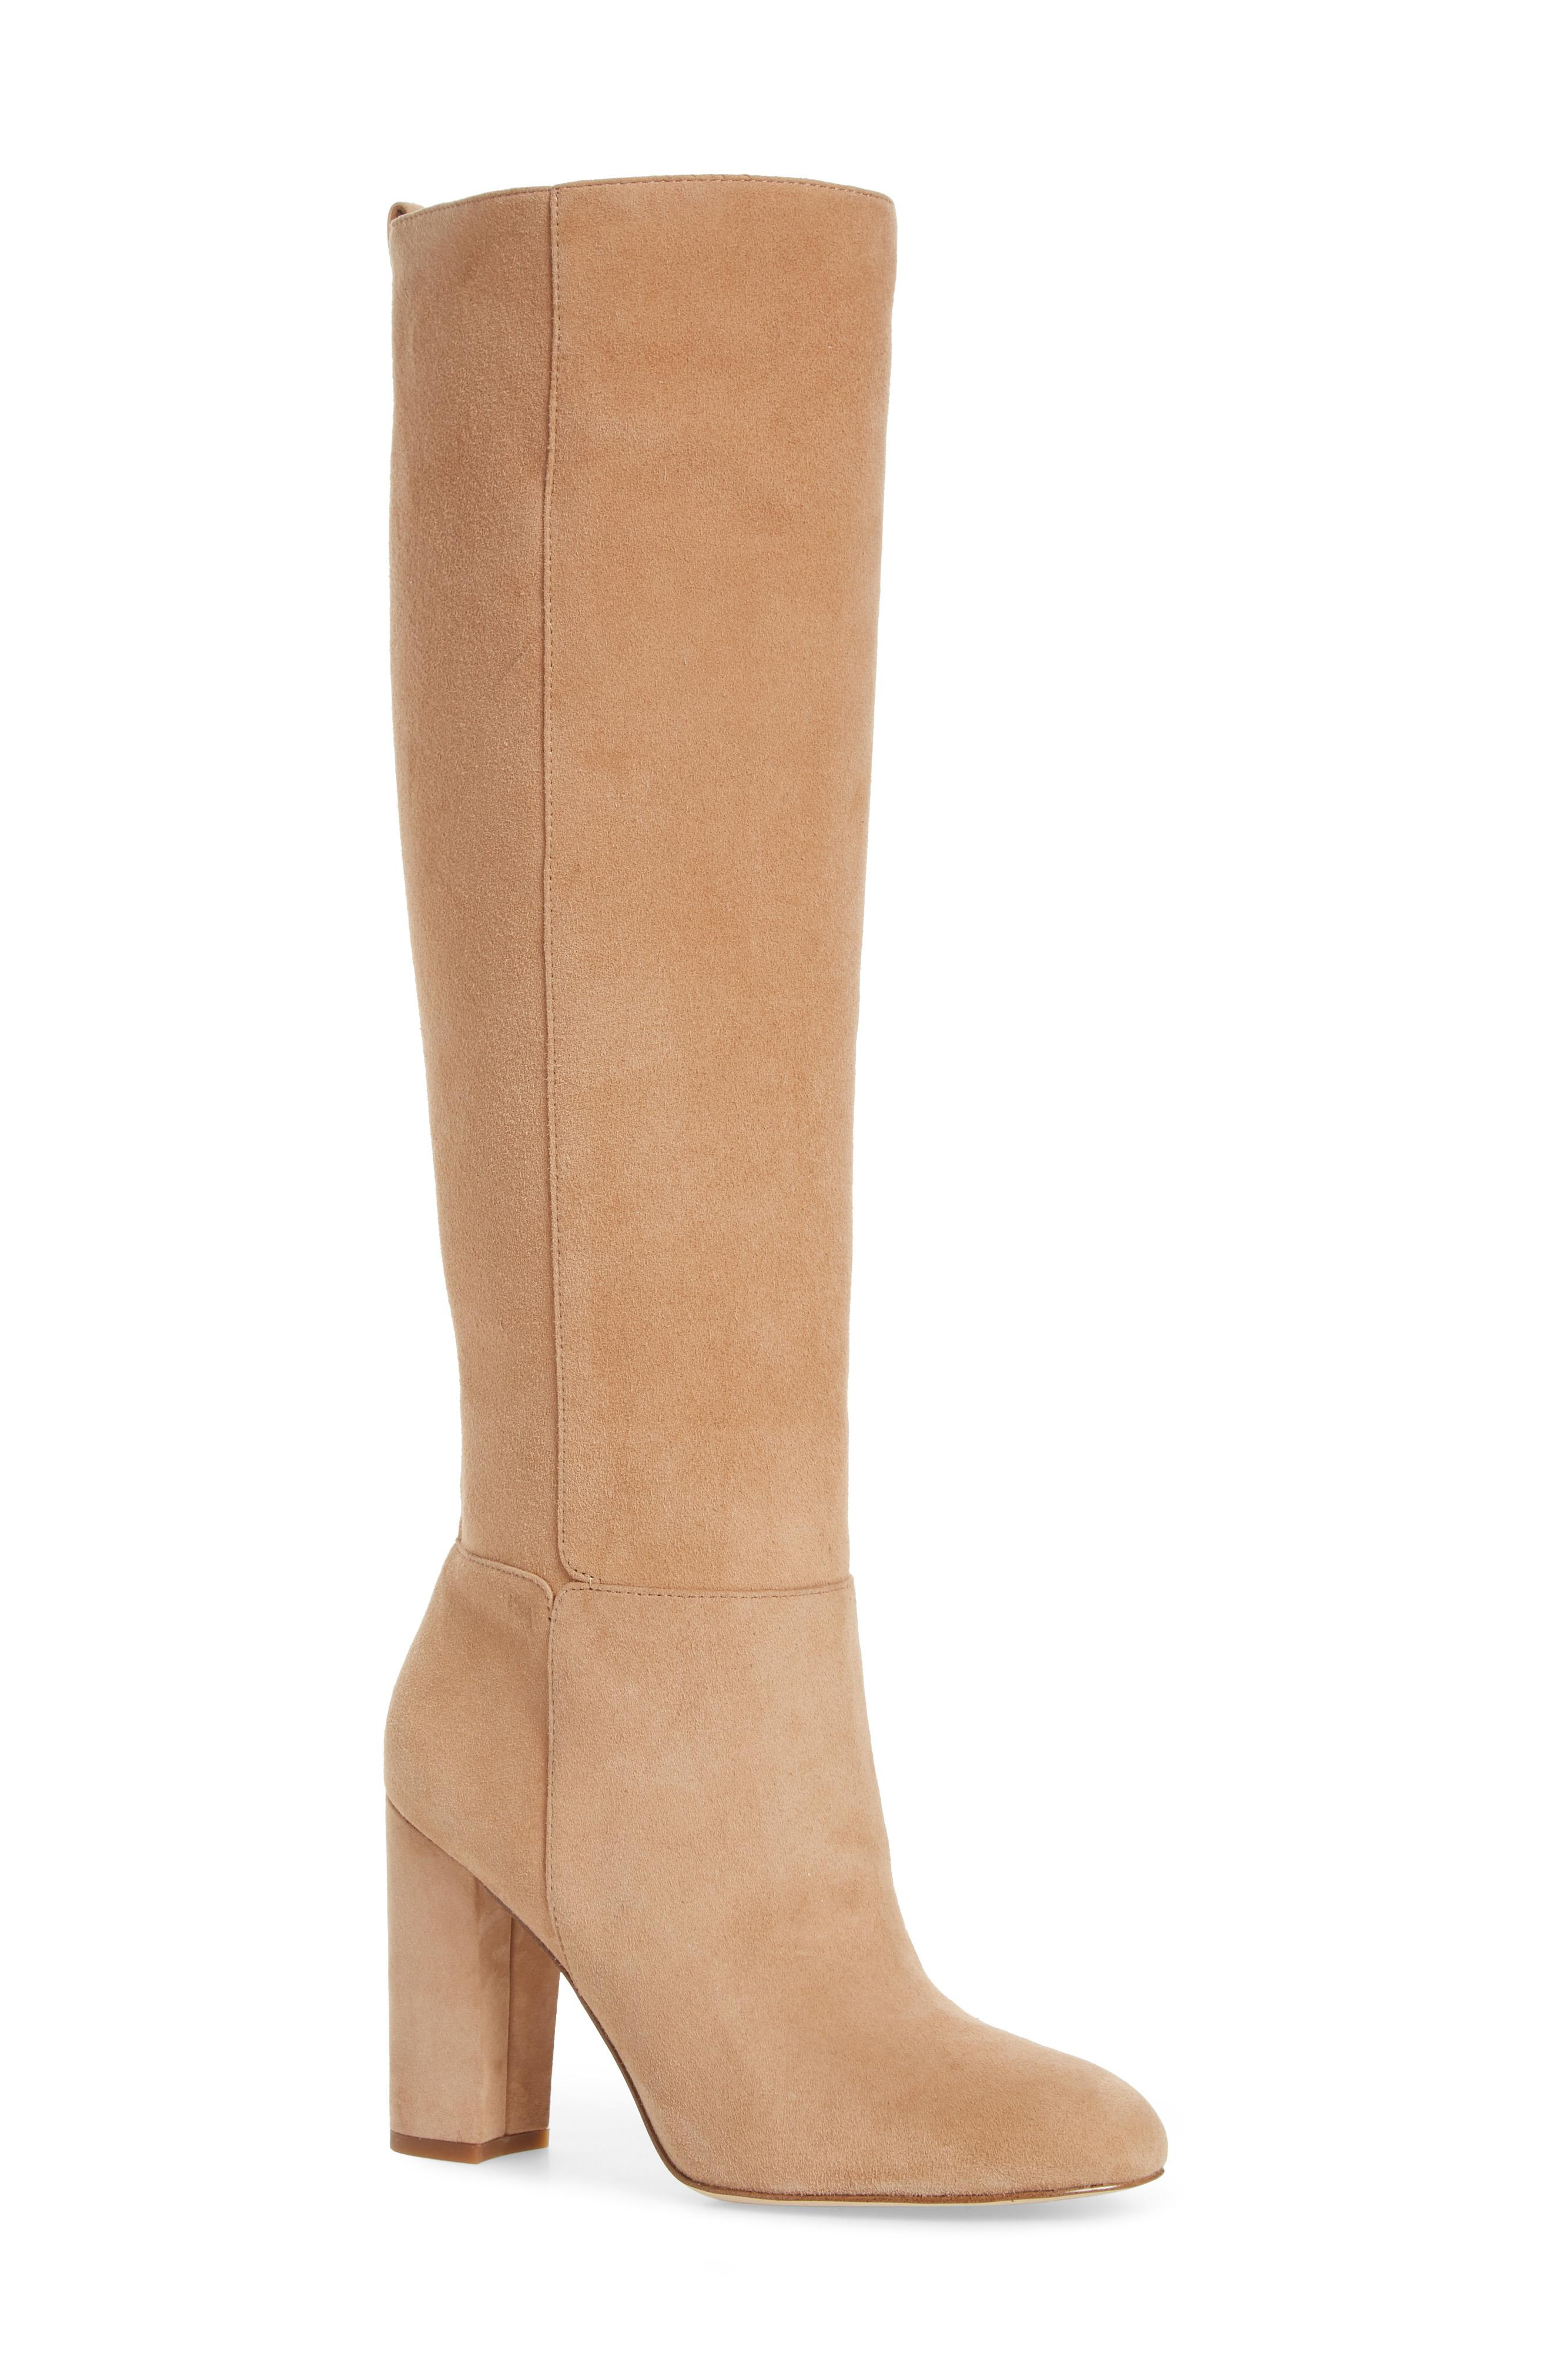 Sam Edelman Caprice Knee-High Boot{ } -- Sale: $149.90 / After Sale: $224.95{ }(Image: Courtesy Nordstrom)